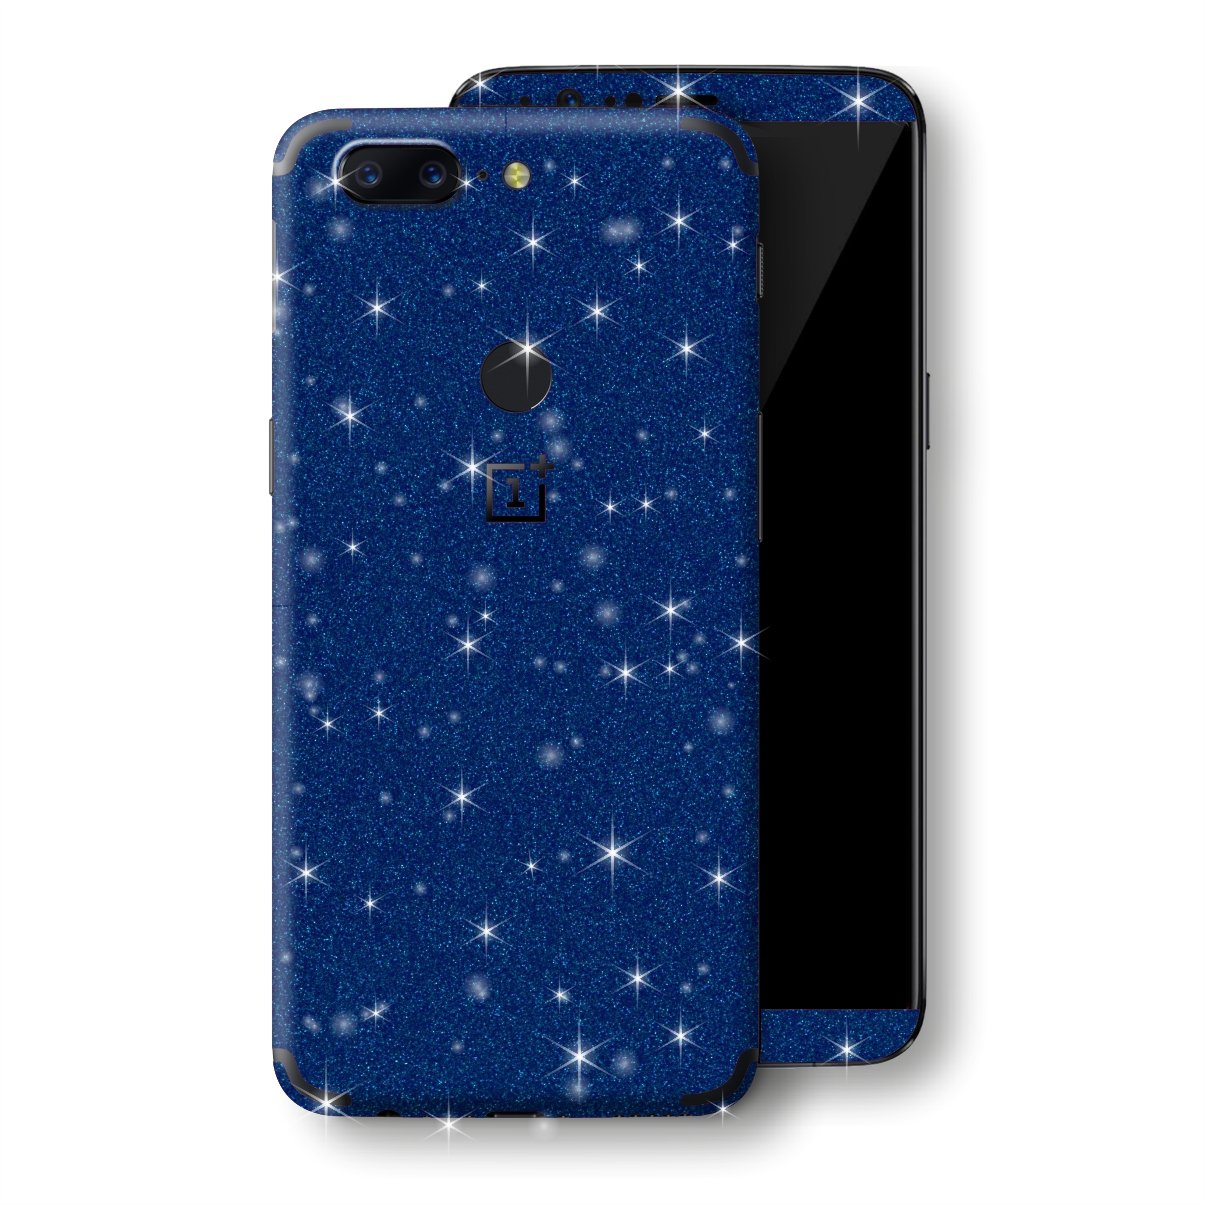 OnePlus 5T Diamond Blue Shimmering, Sparkling, Glitter Skin, Decal, Wrap, Protector, Cover by EasySkinz | EasySkinz.com